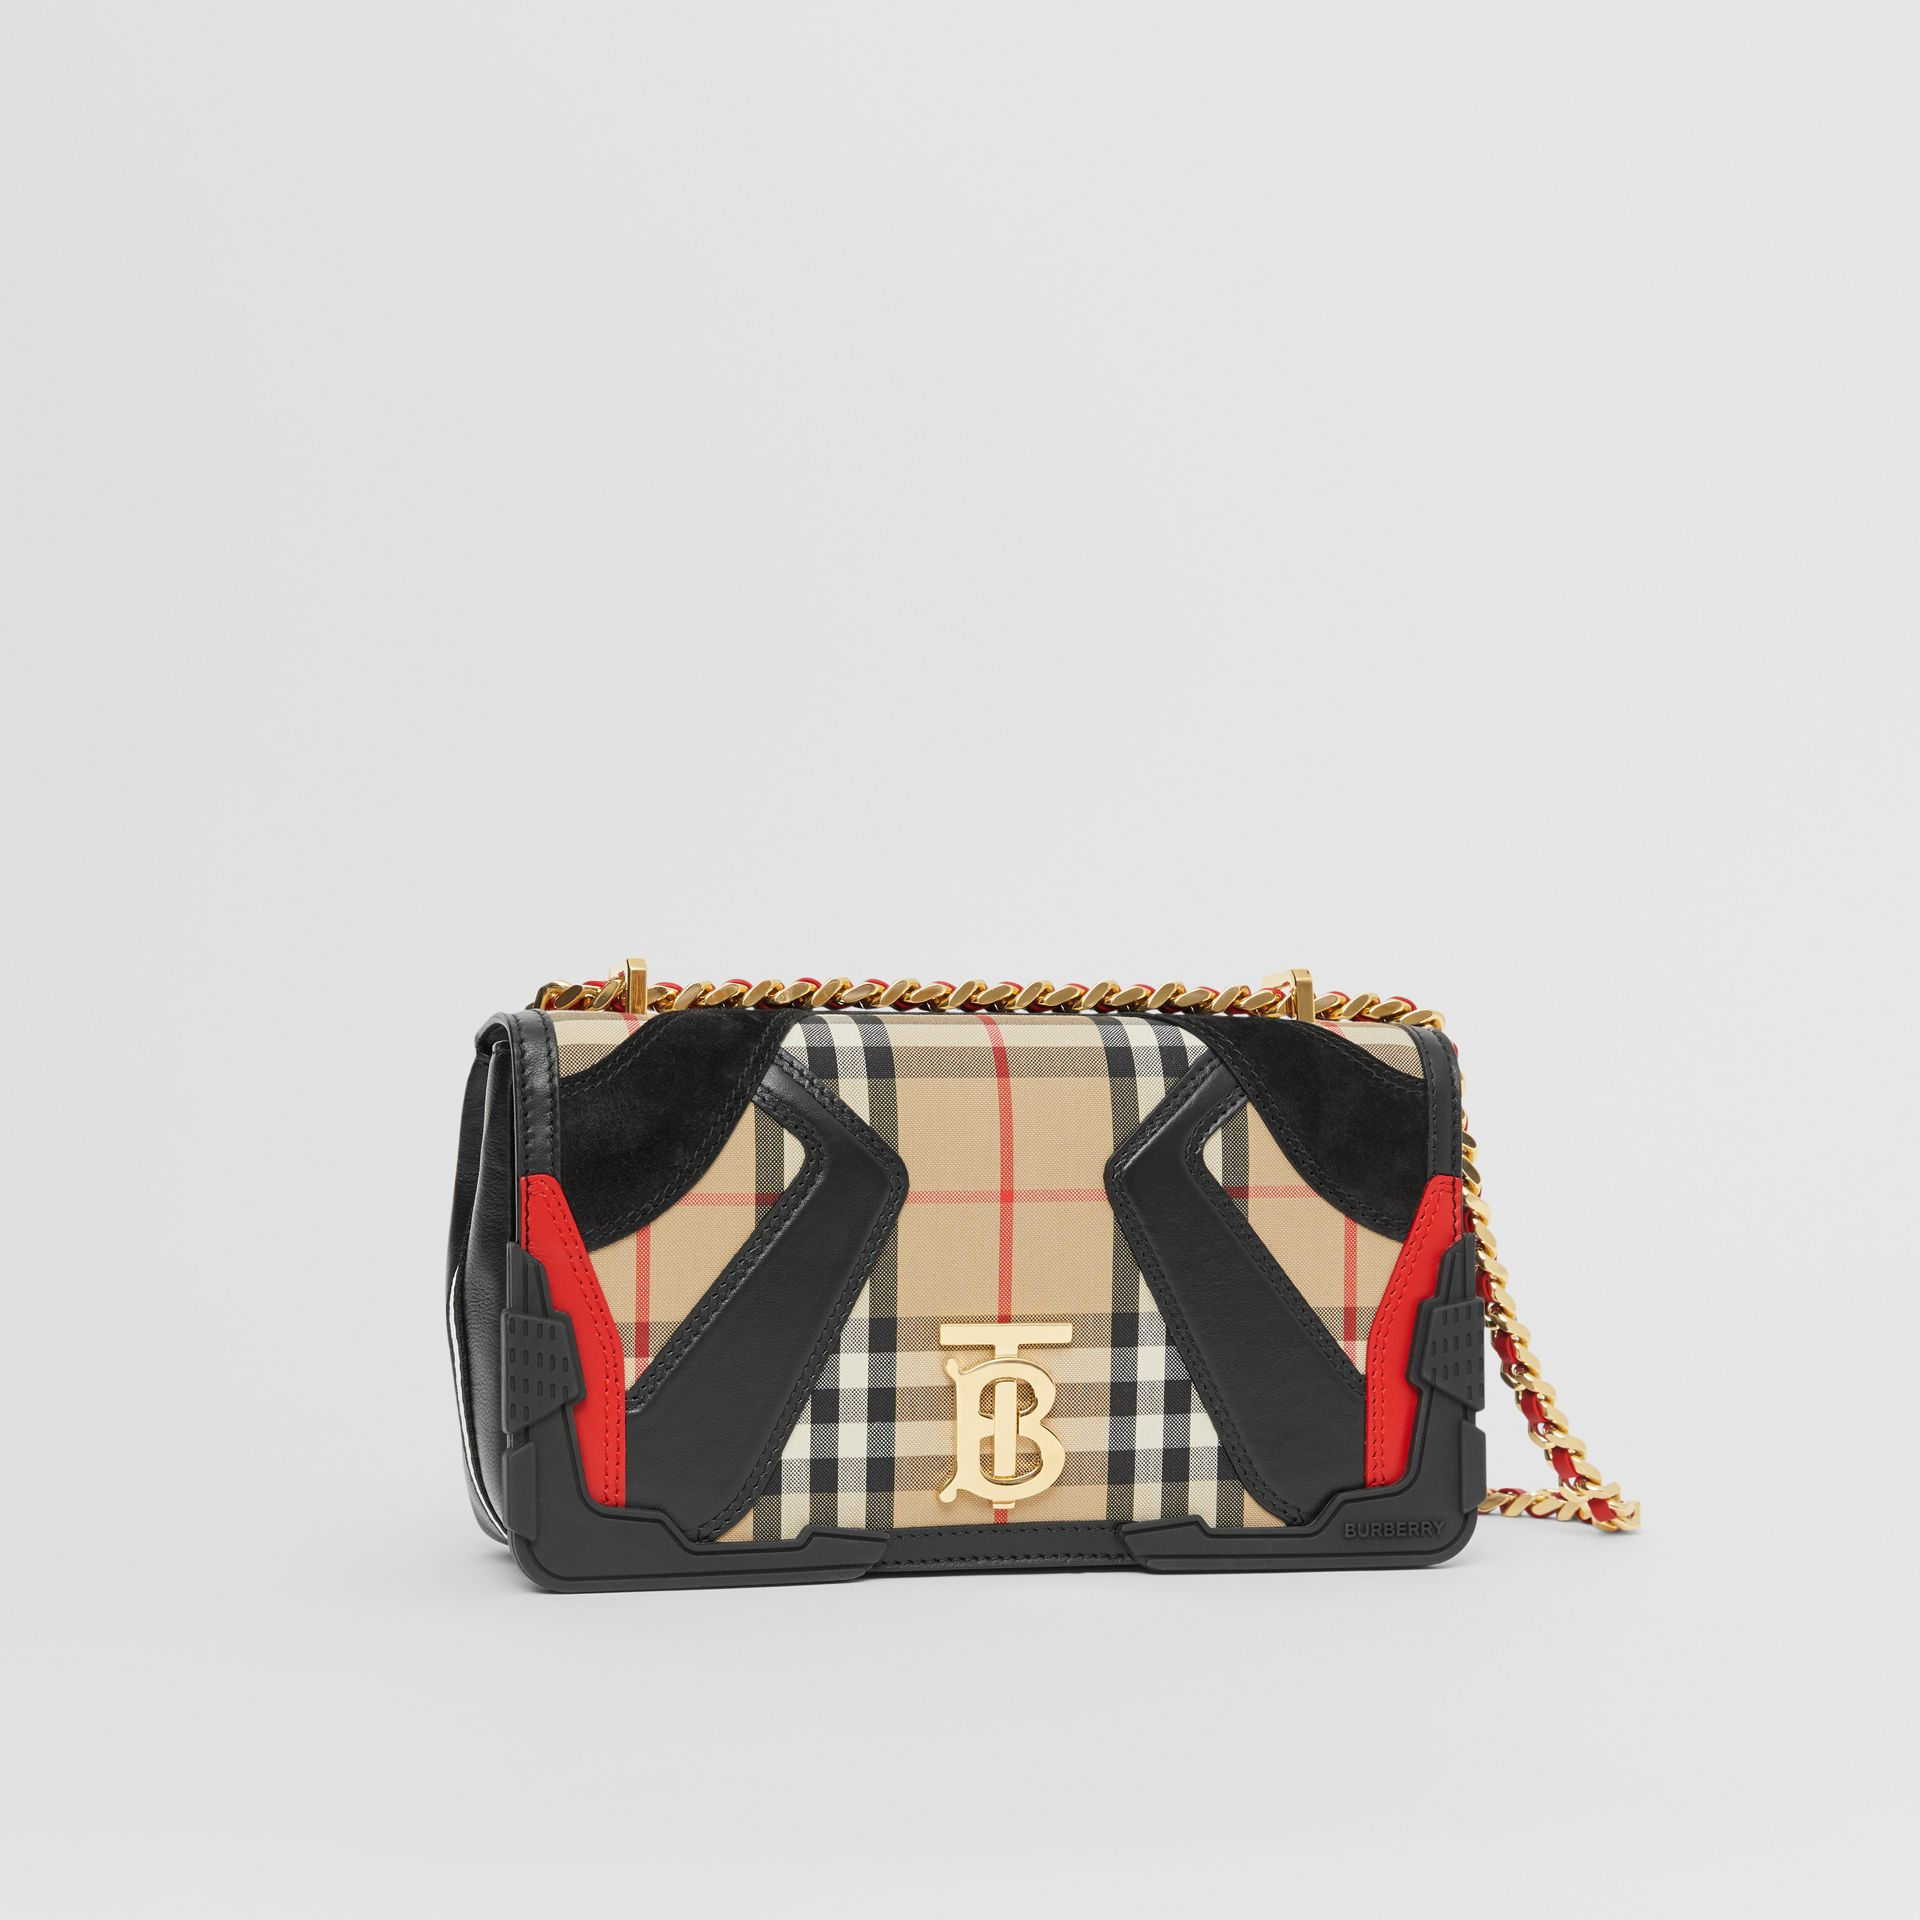 Small Appliqué Vintage Check Lola Bag in Archive Beige - Women | Burberry - gallery image 6